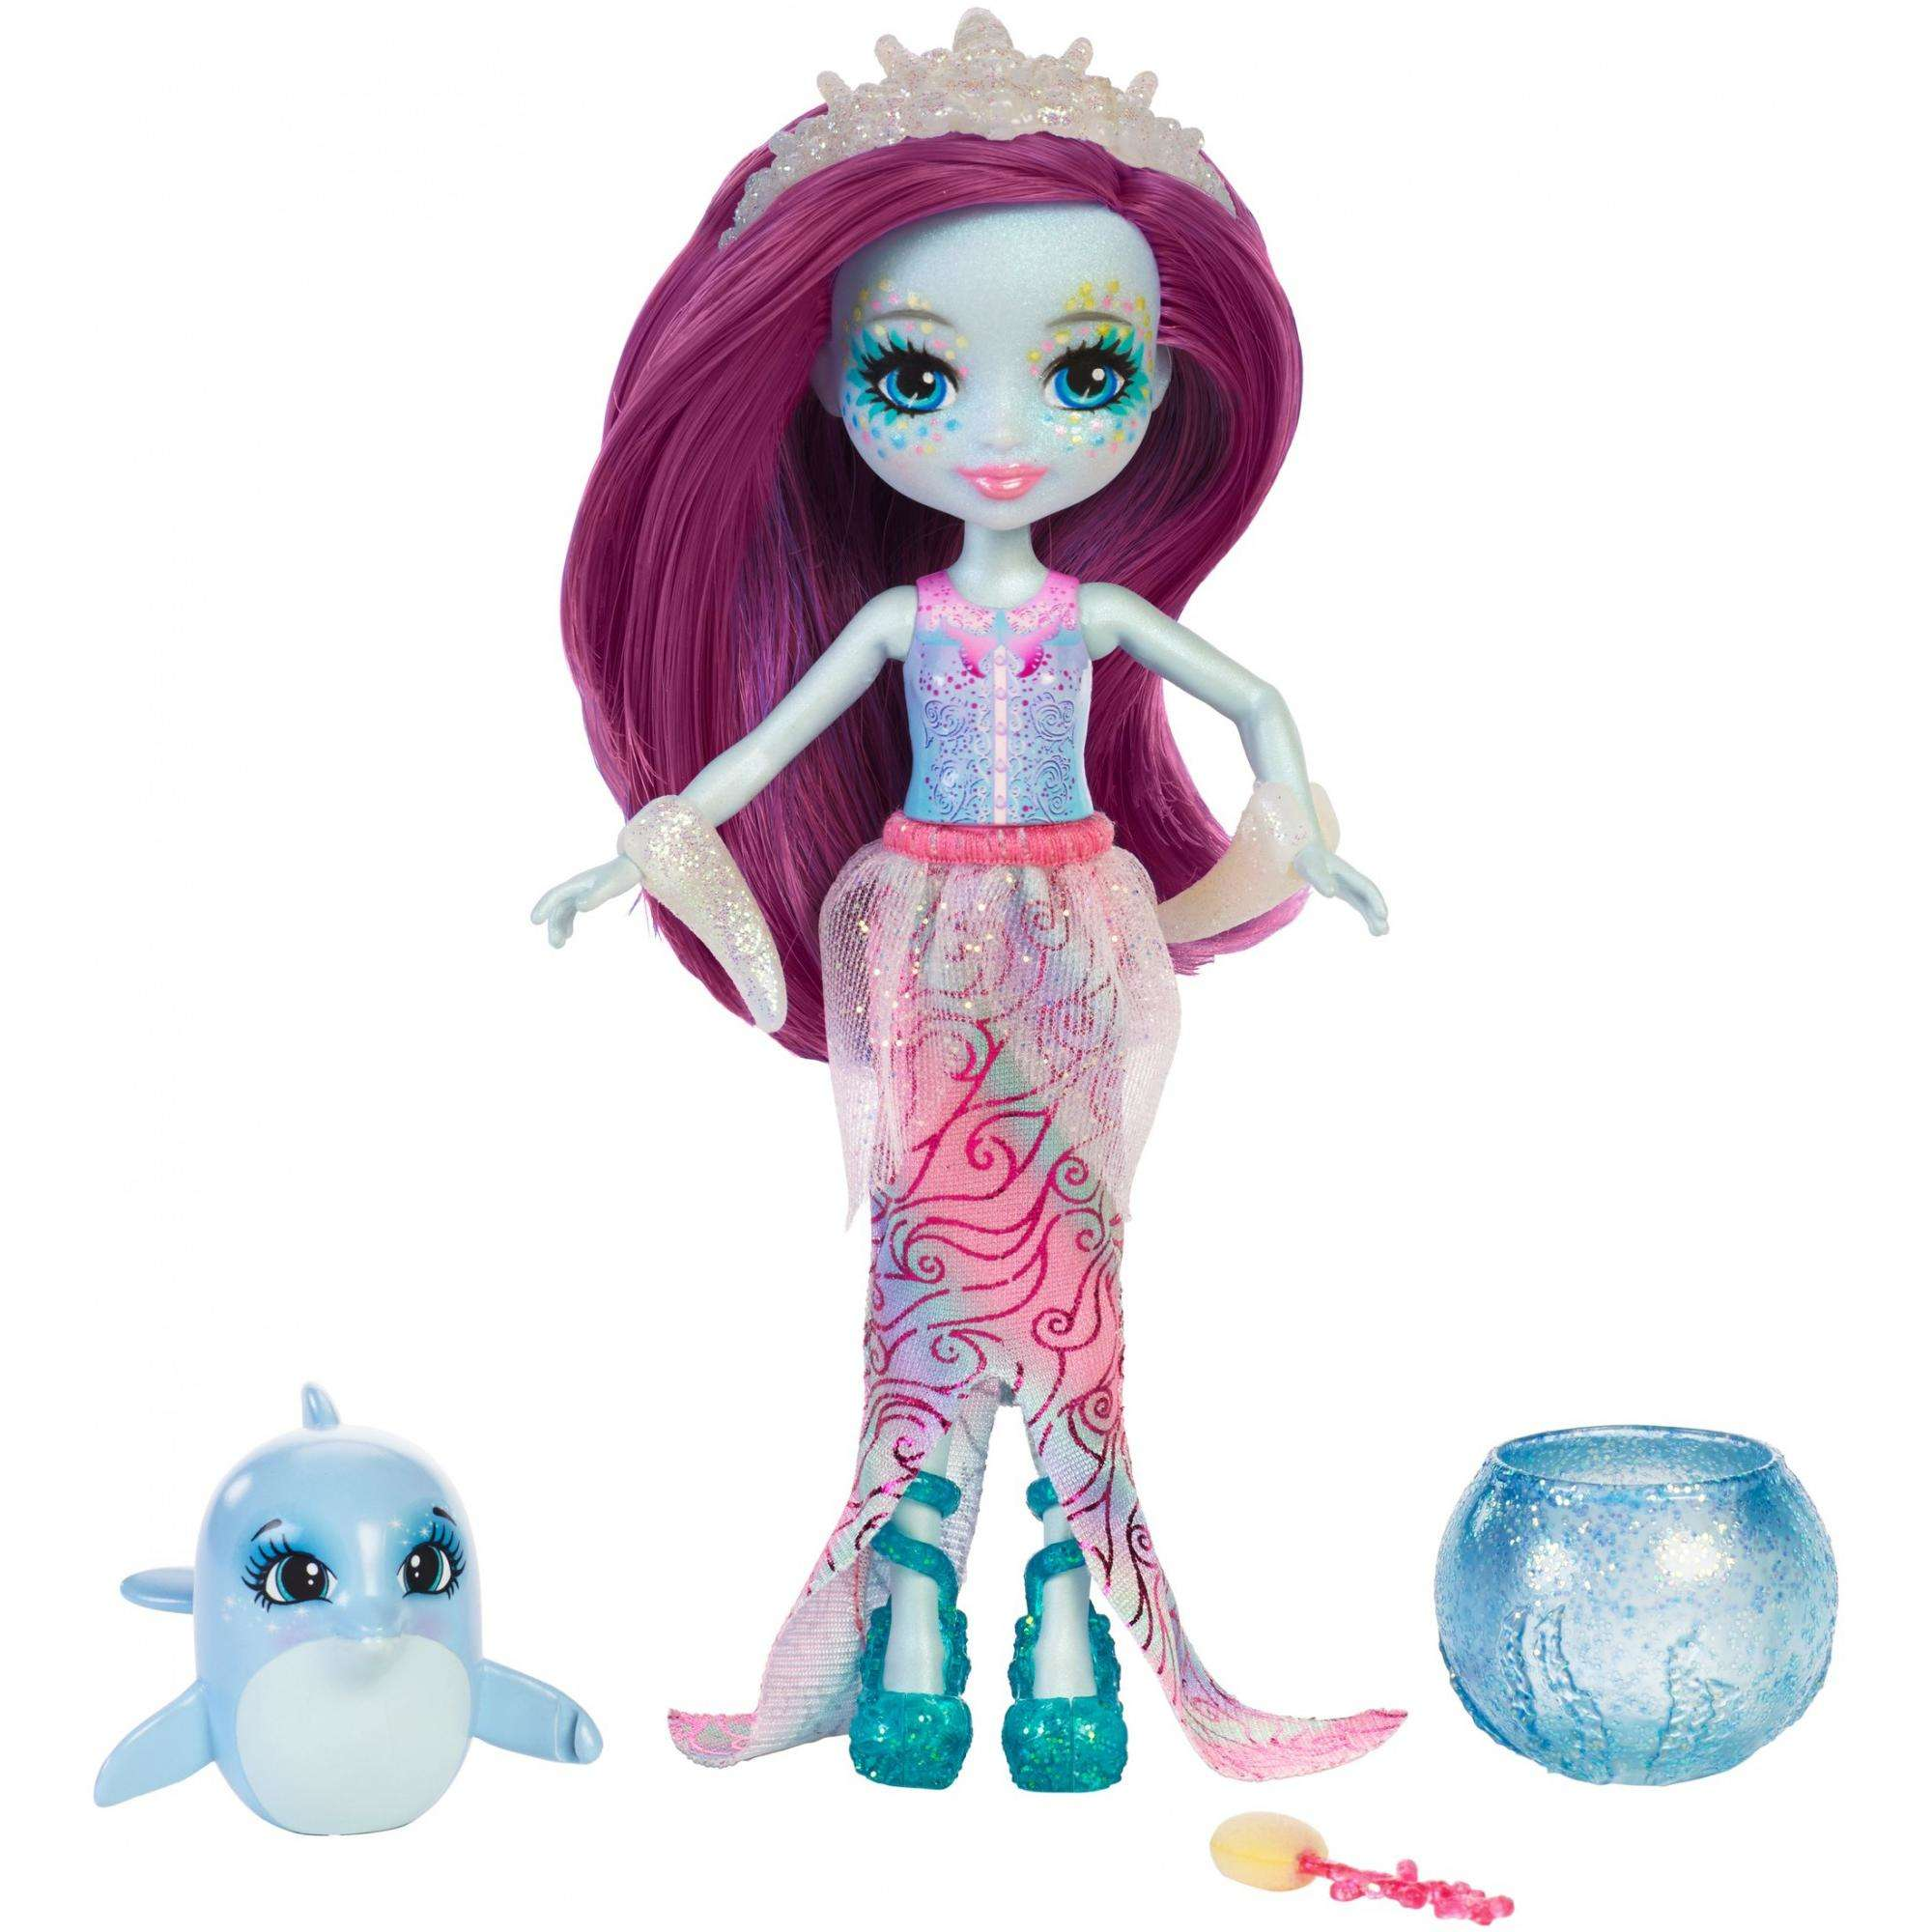 Enchantimals Dolce Dolphin Dolls by Mattel